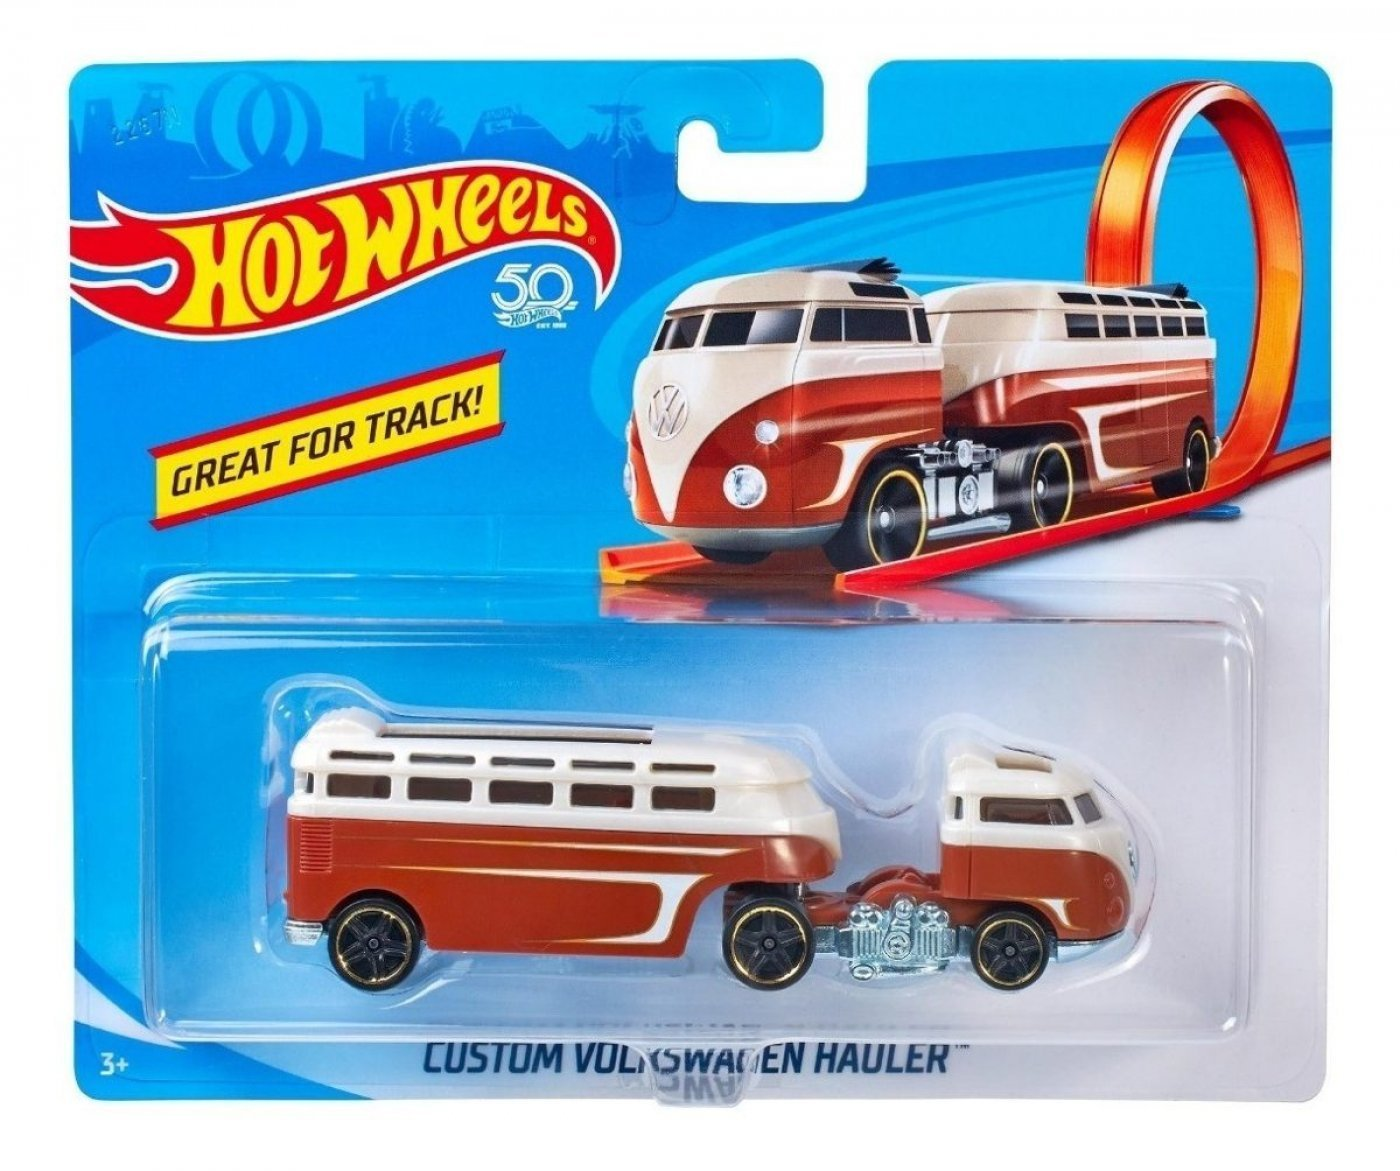 Hot Wheels Custom Volkswagen Hauler Camión Original Mattel